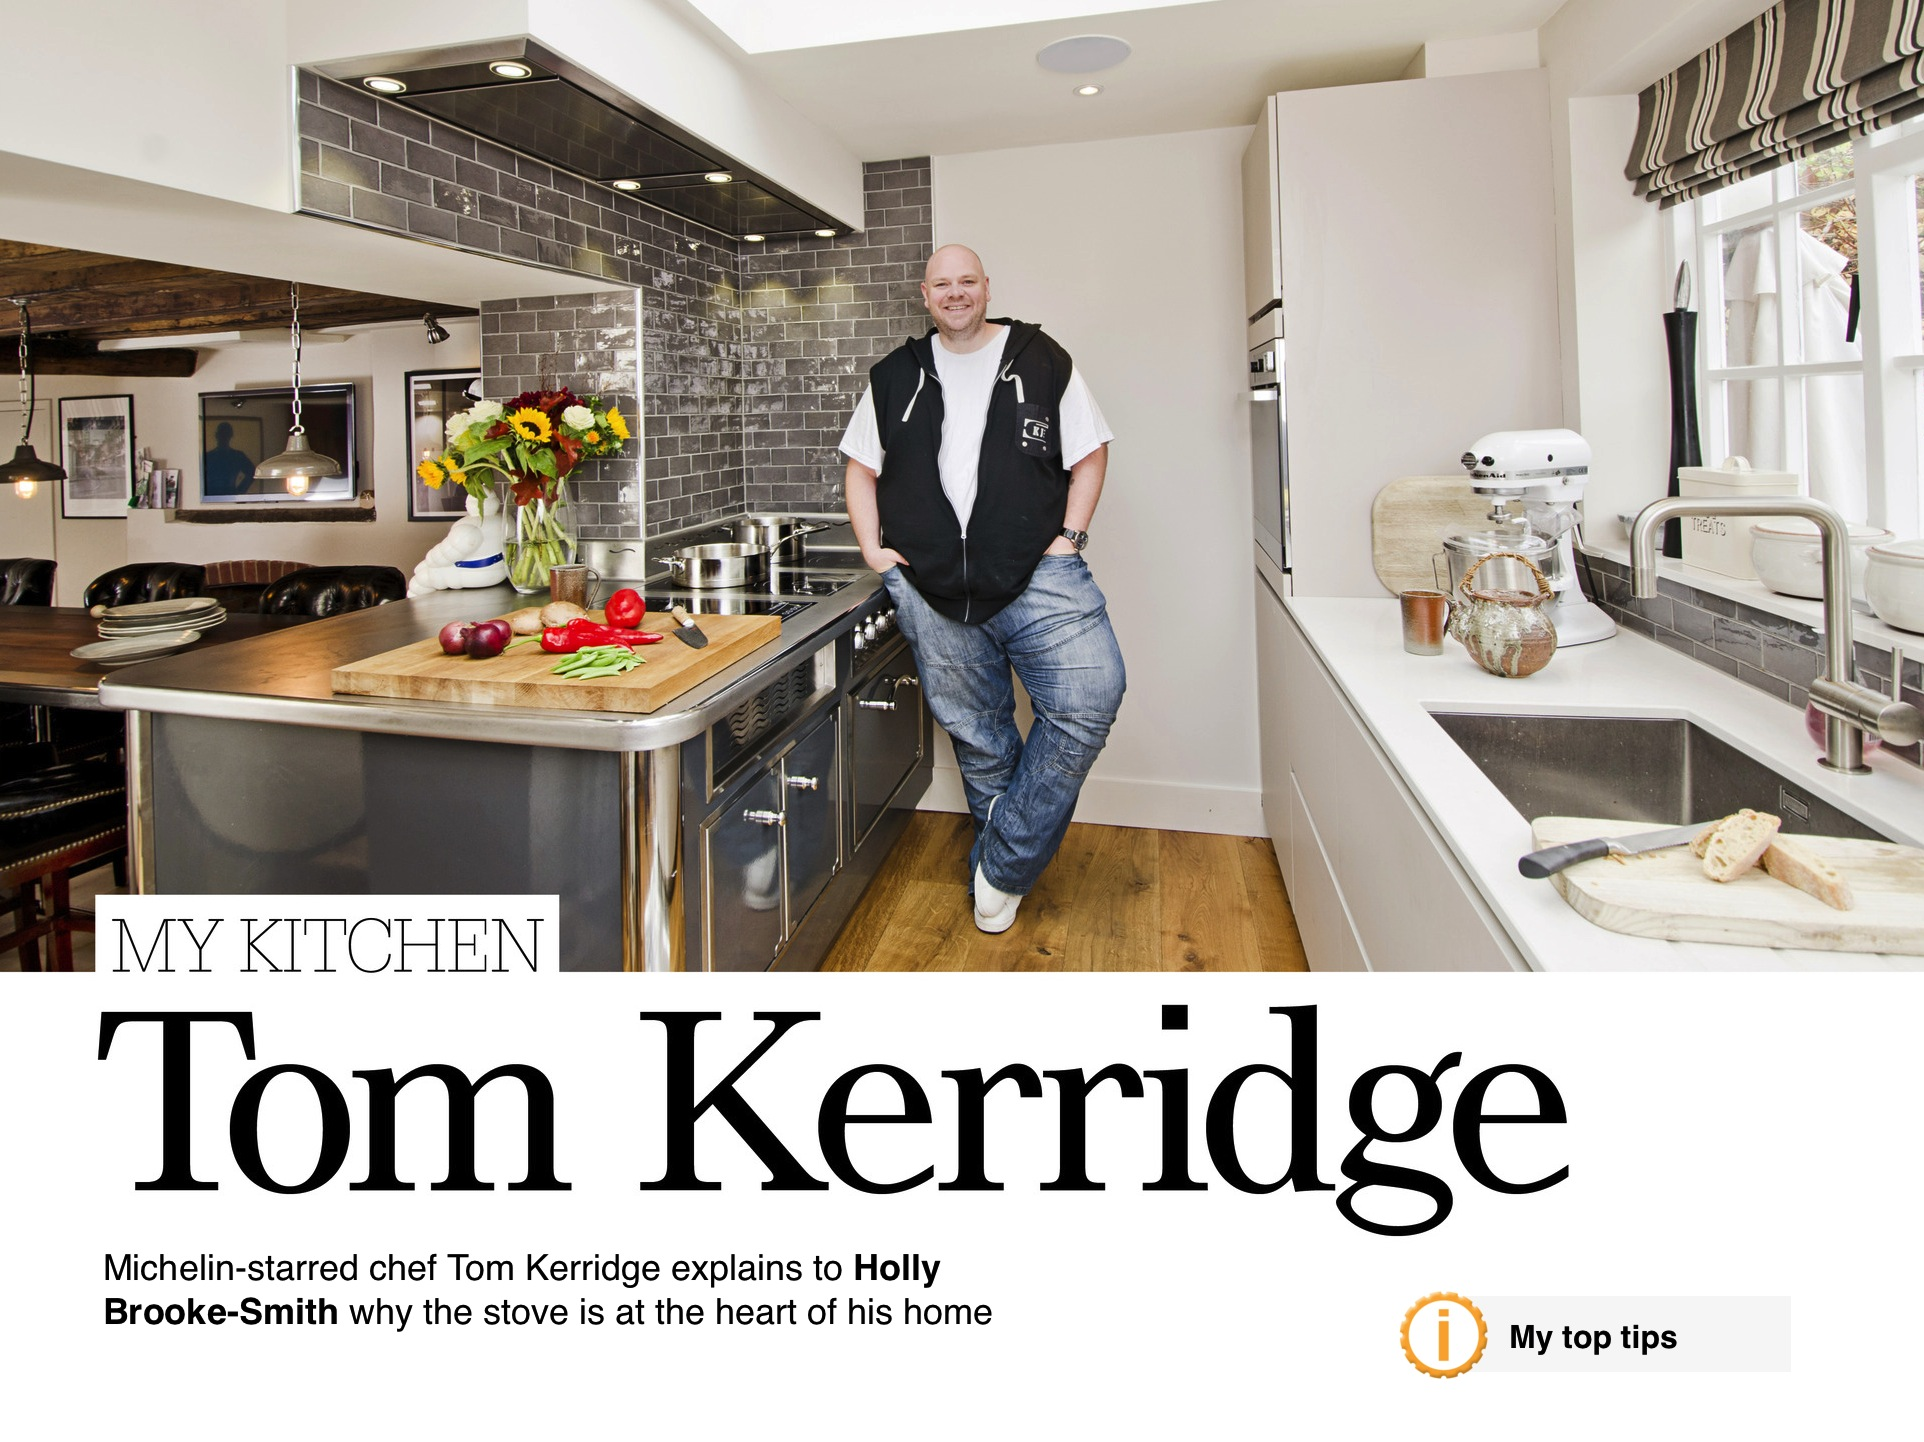 enamel lamp shades in Tom Kerridge's kitchen